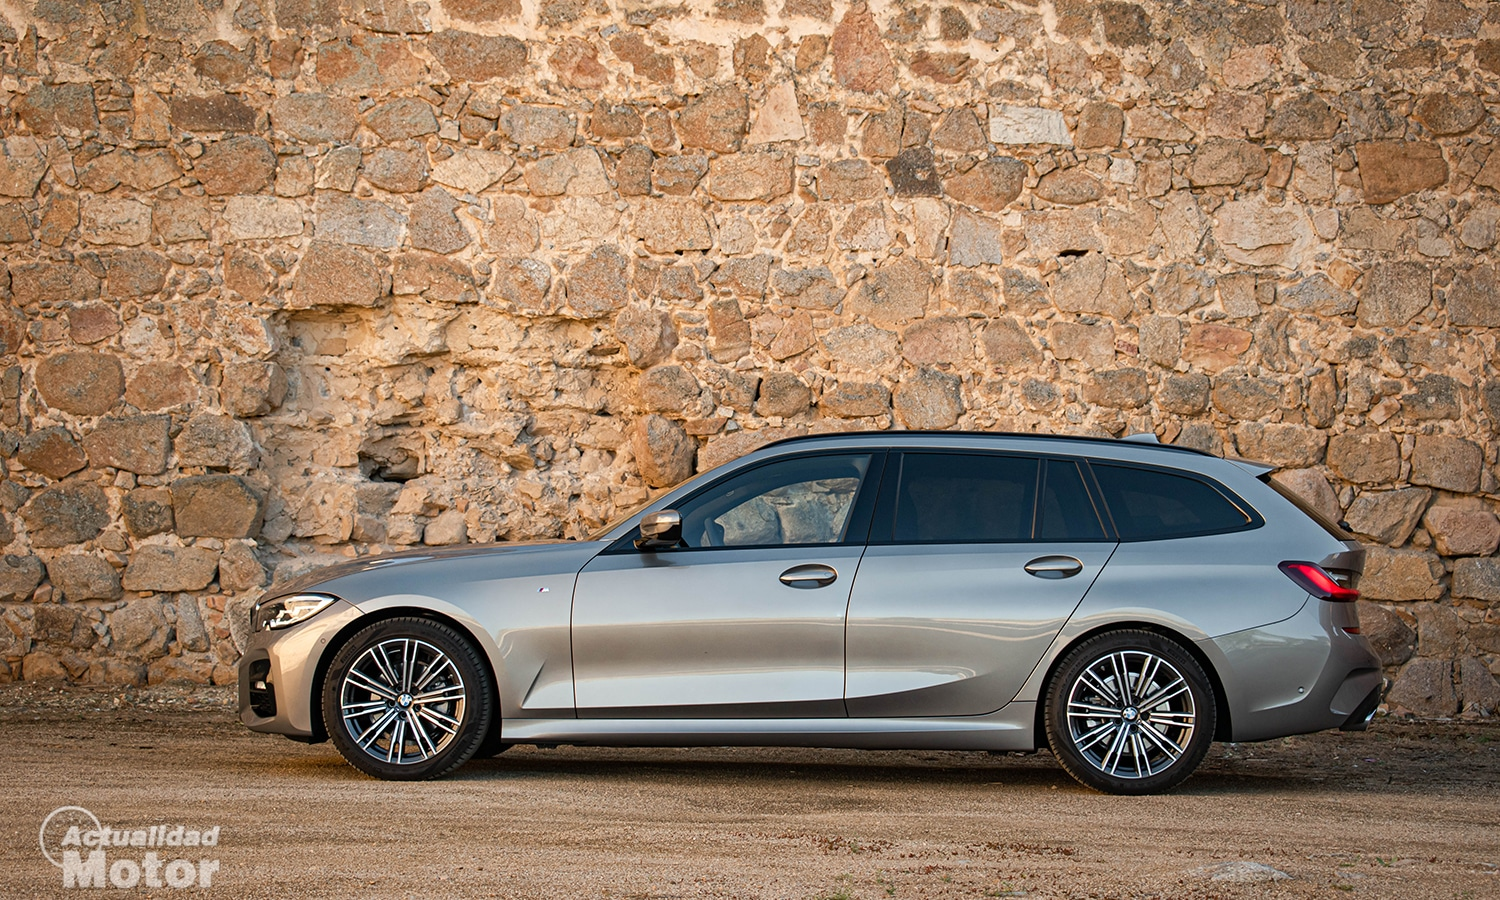 Prueba BMW Serie 3 Touring paquete M lateral